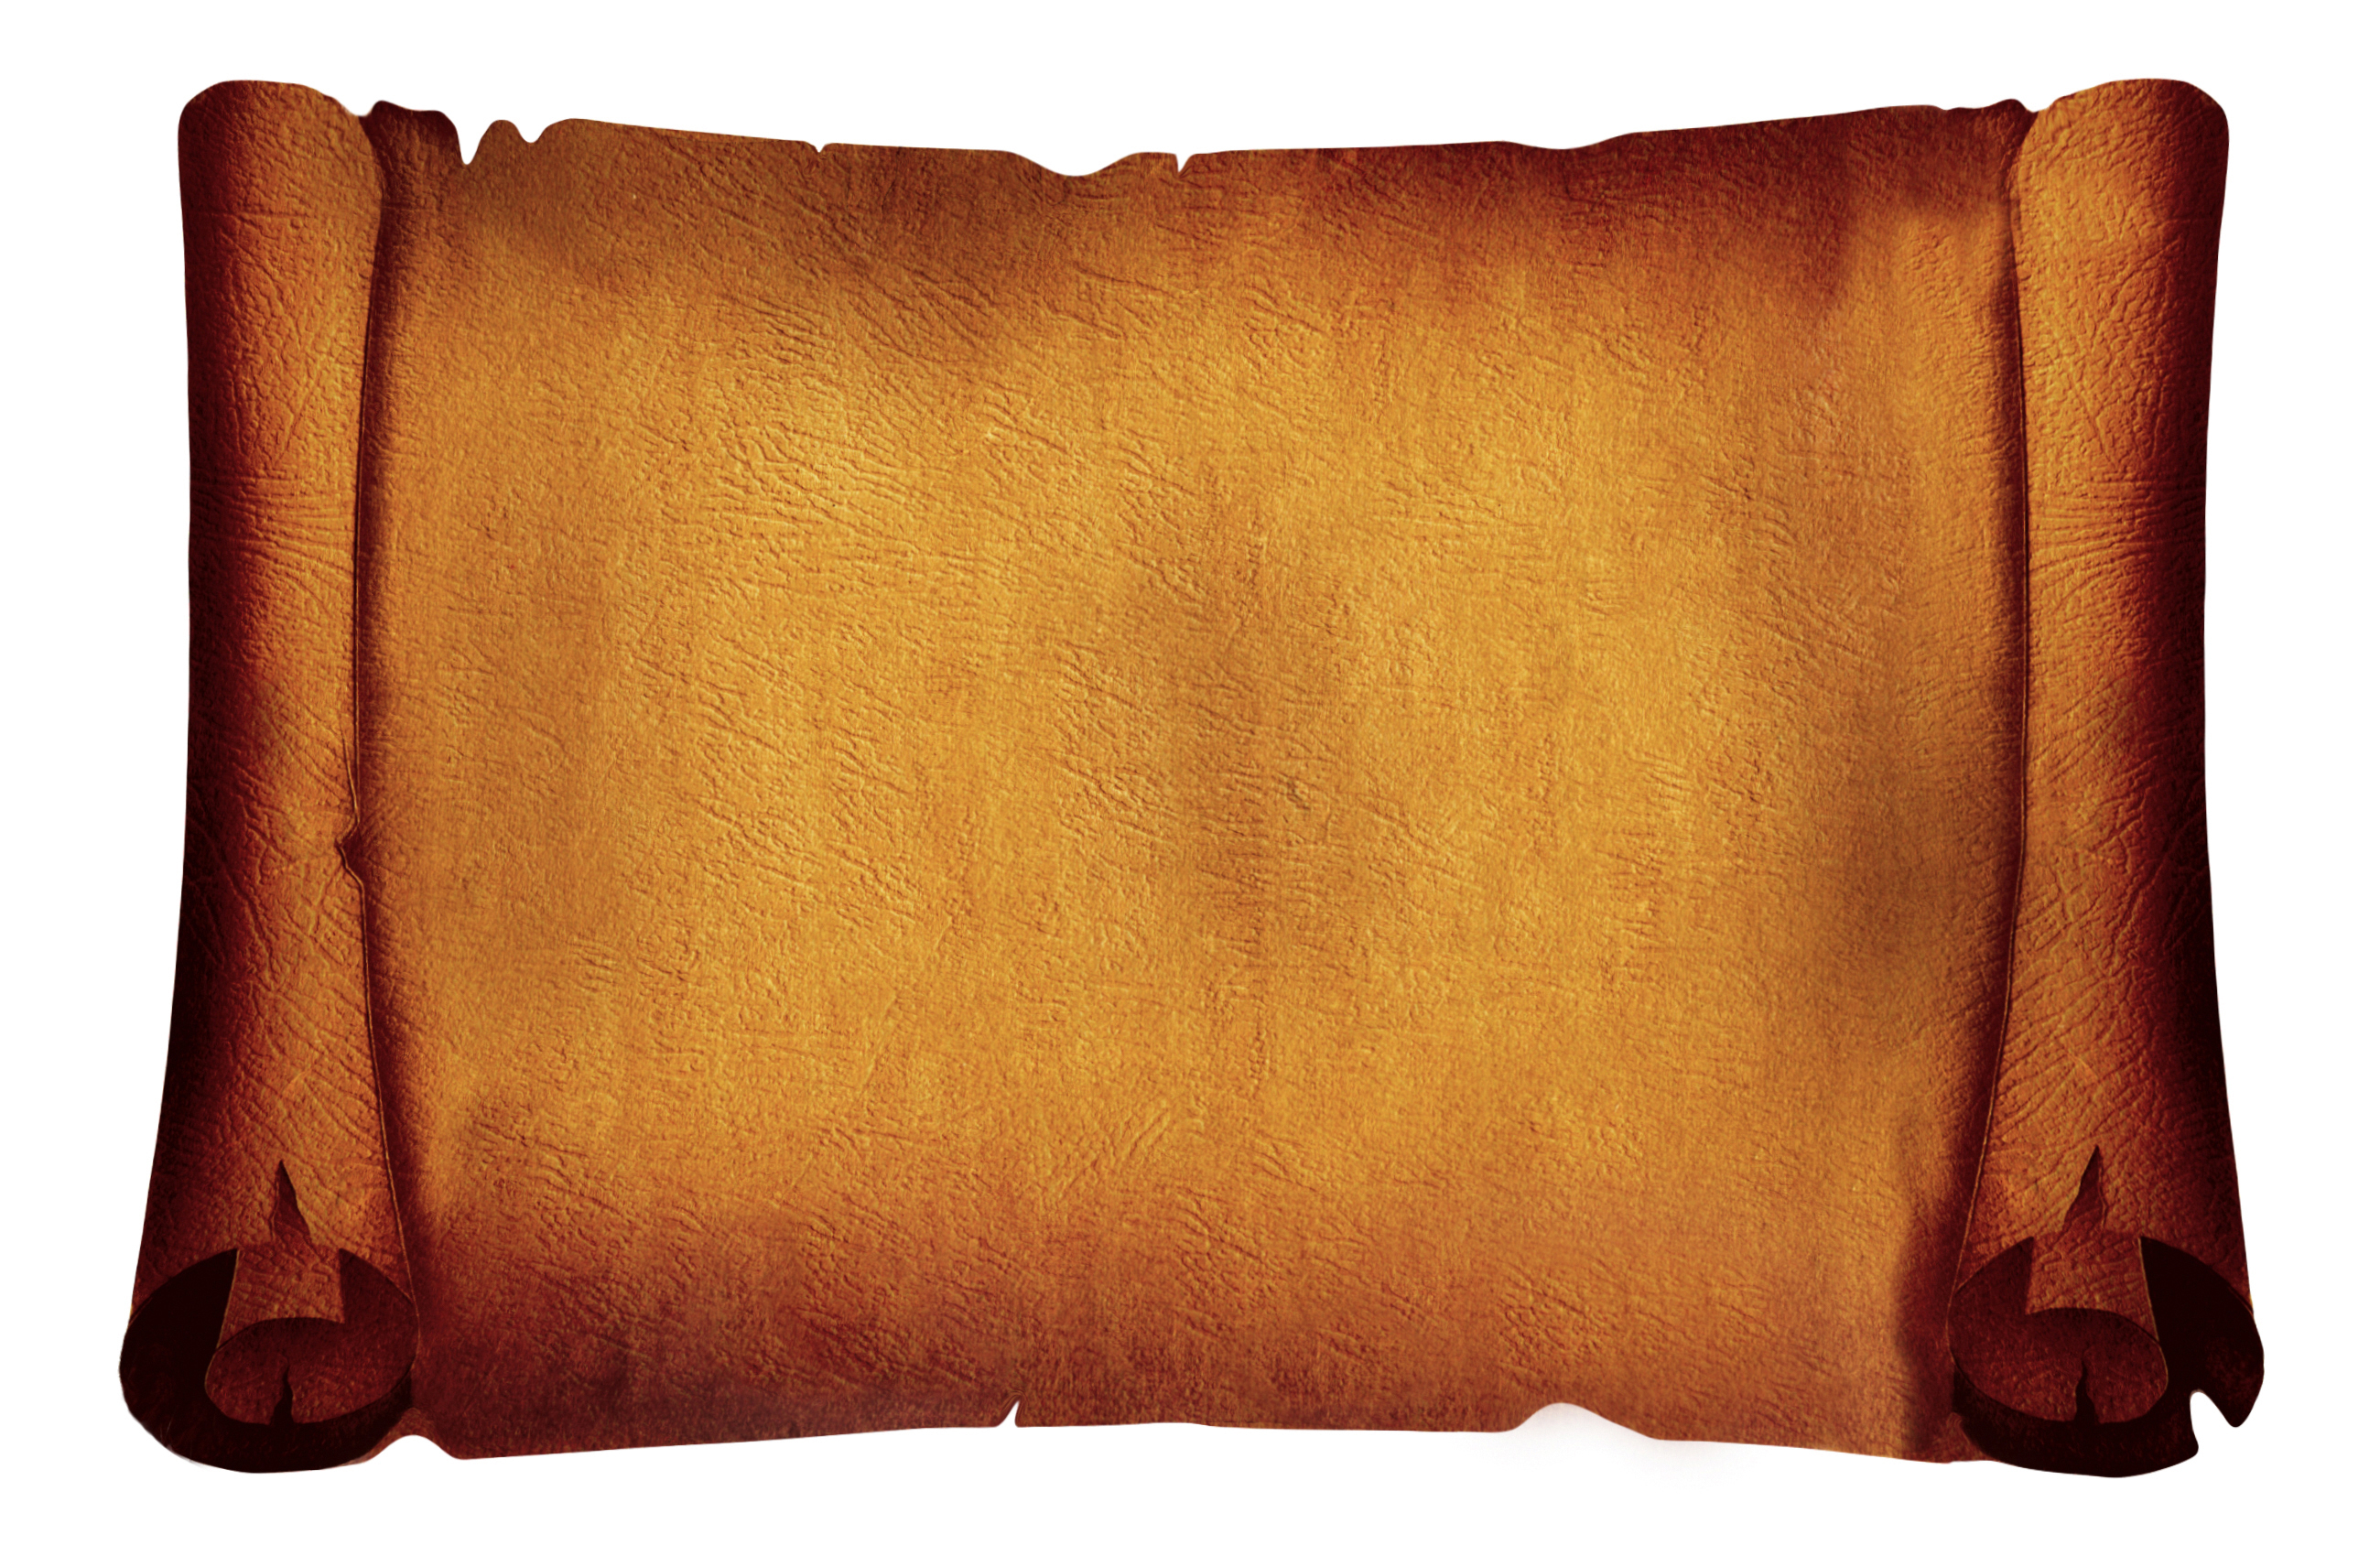 Antique Scroll Frame Background Png image #26415